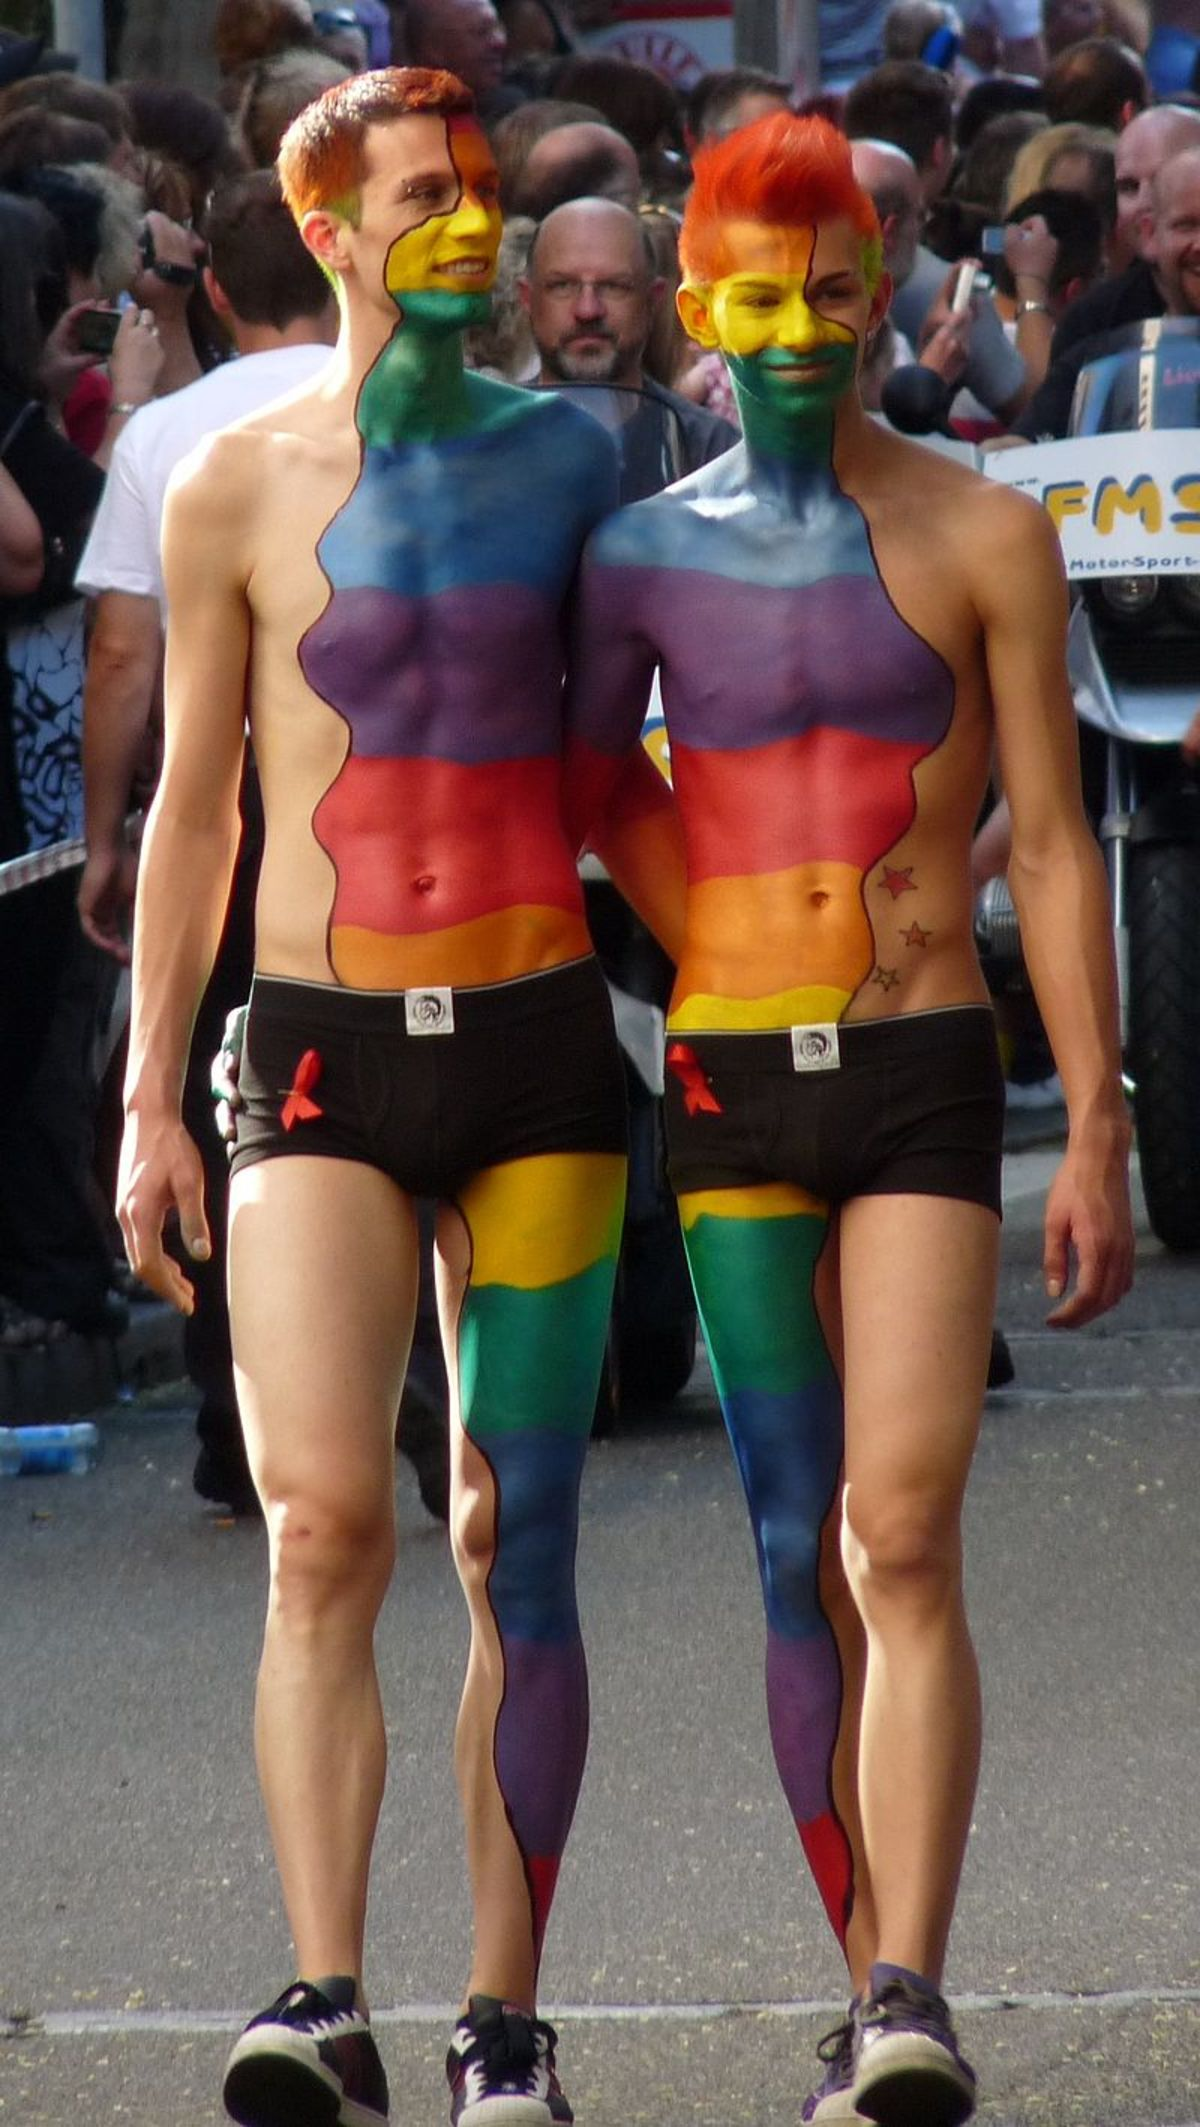 Gay Swords, free gay dating, Dublin, Ireland: Only Lads - free